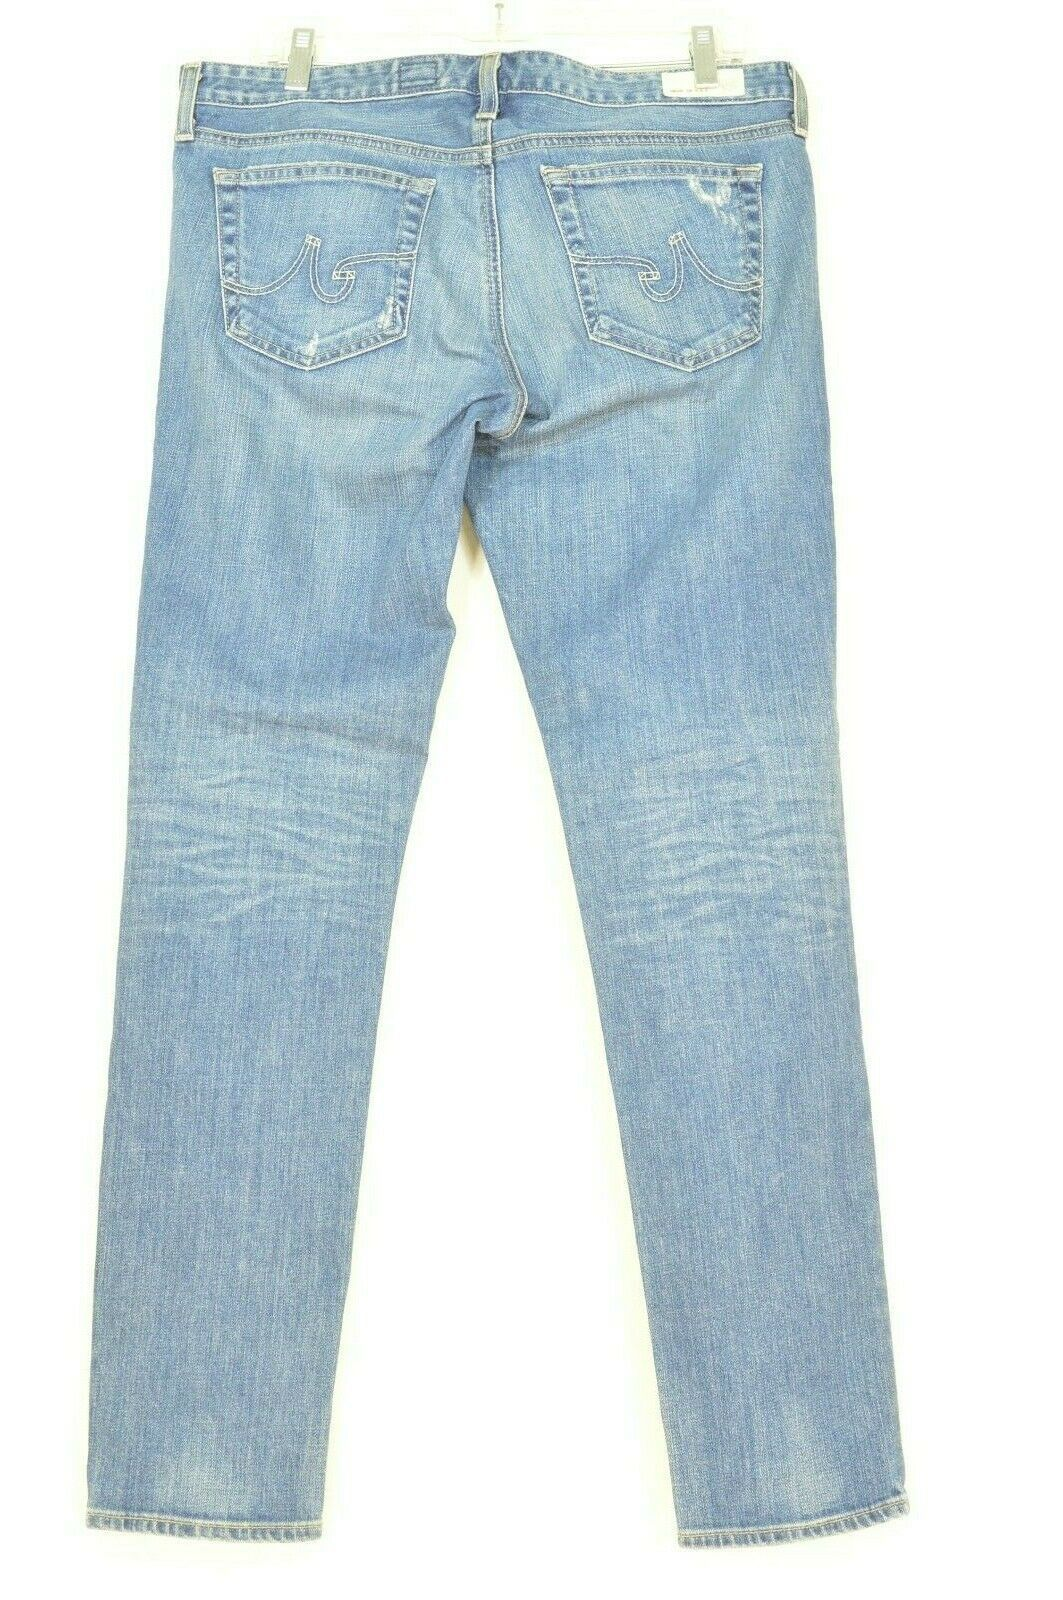 AG Adriano Goldschmied jeans 31 x 31 Stilt cigarette leg 17Y - SVT destroyed USA image 8